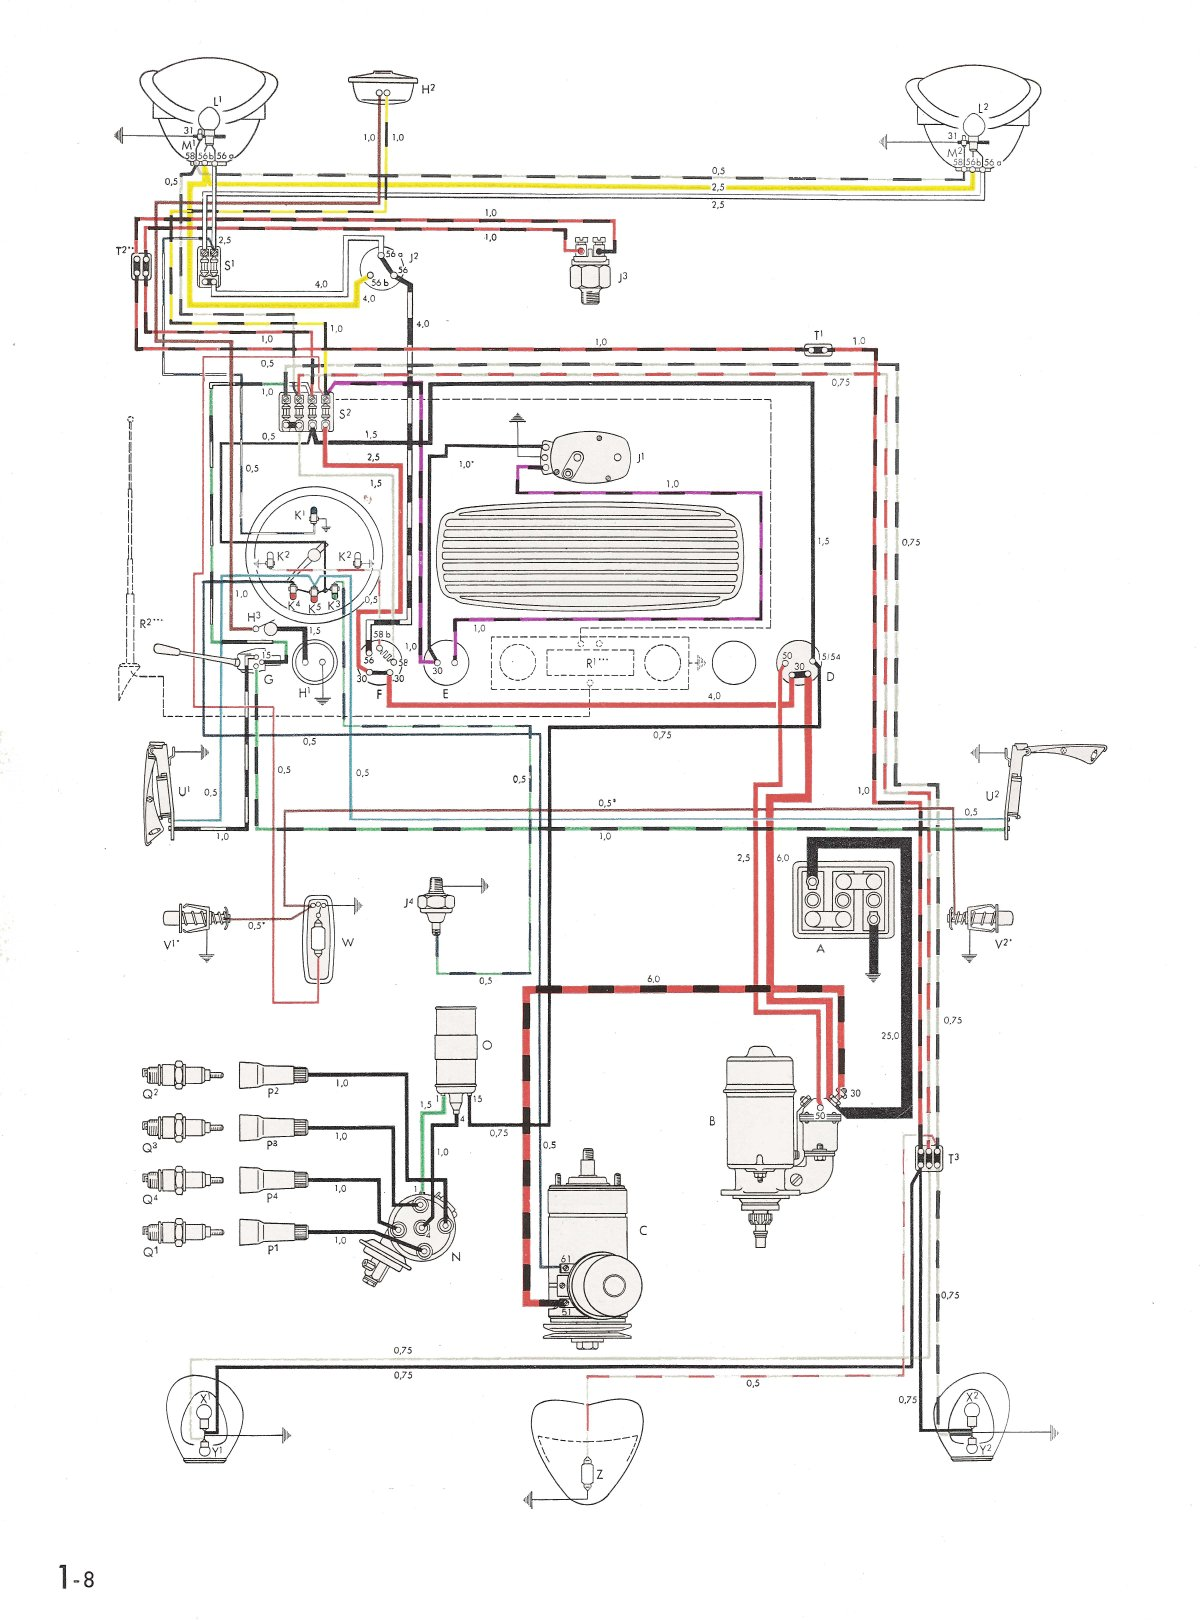 bug54 thesamba com type 1 wiring diagrams 1973 Super Beetle Wiring Diagram at crackthecode.co